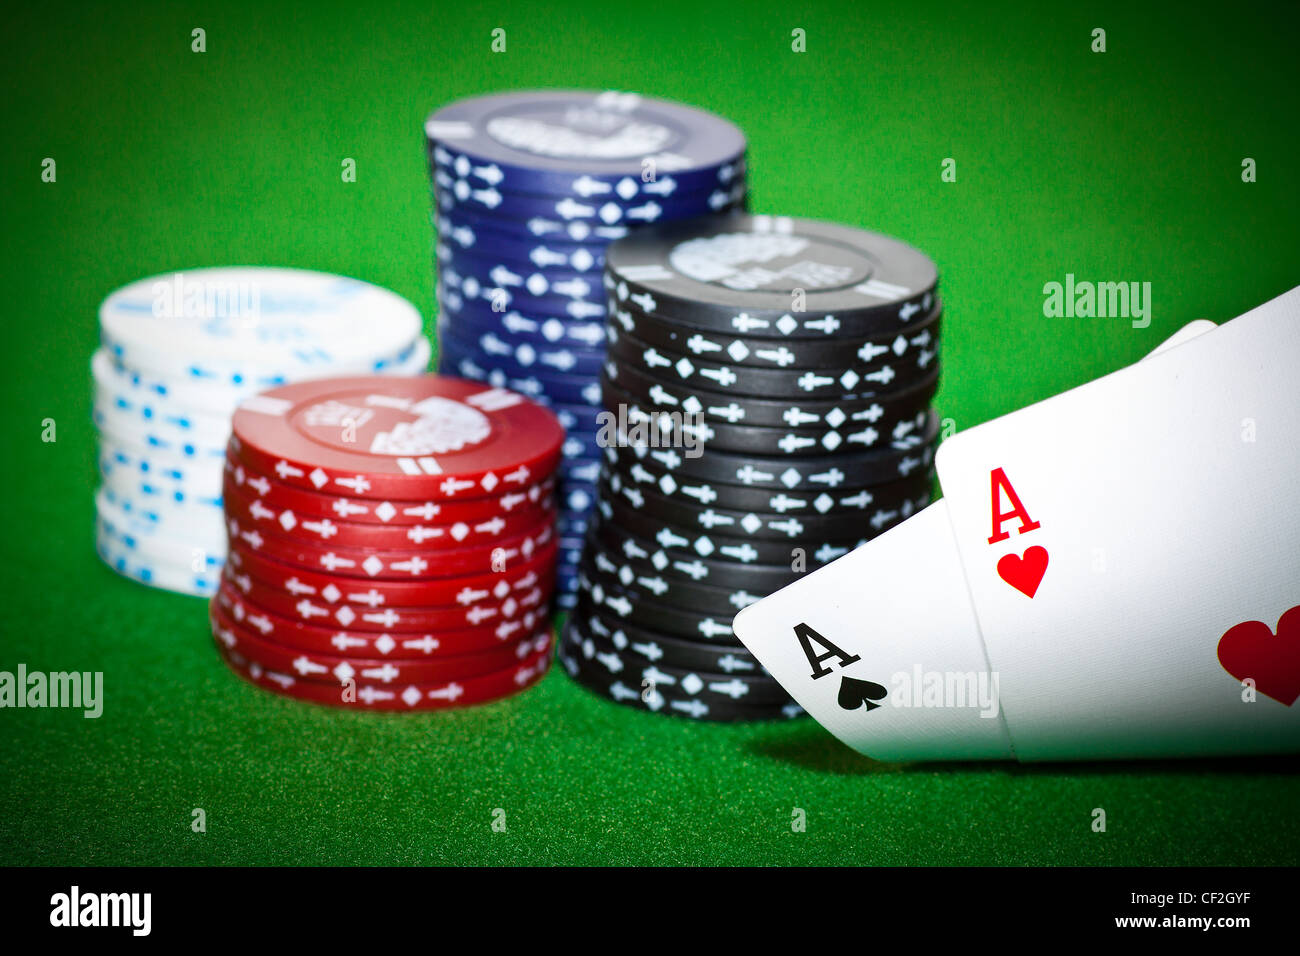 Gambling chips, ace of diamonds and king of spades on green poker cloth. - Stock Image